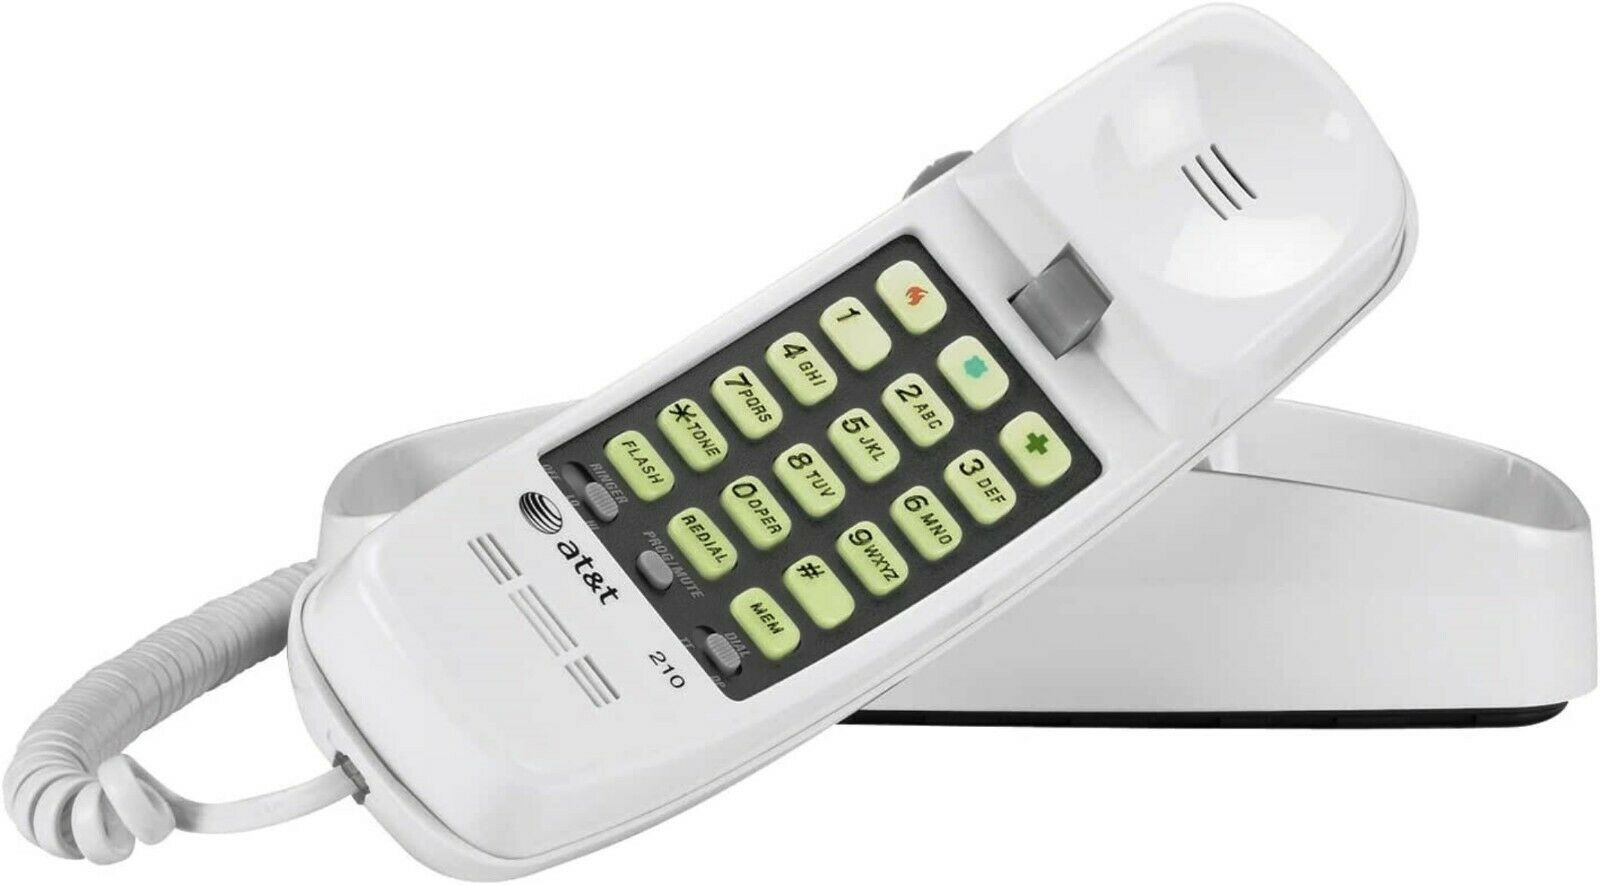 AT&T 210 Basic Trimline Corded Phone, No AC Power Required,